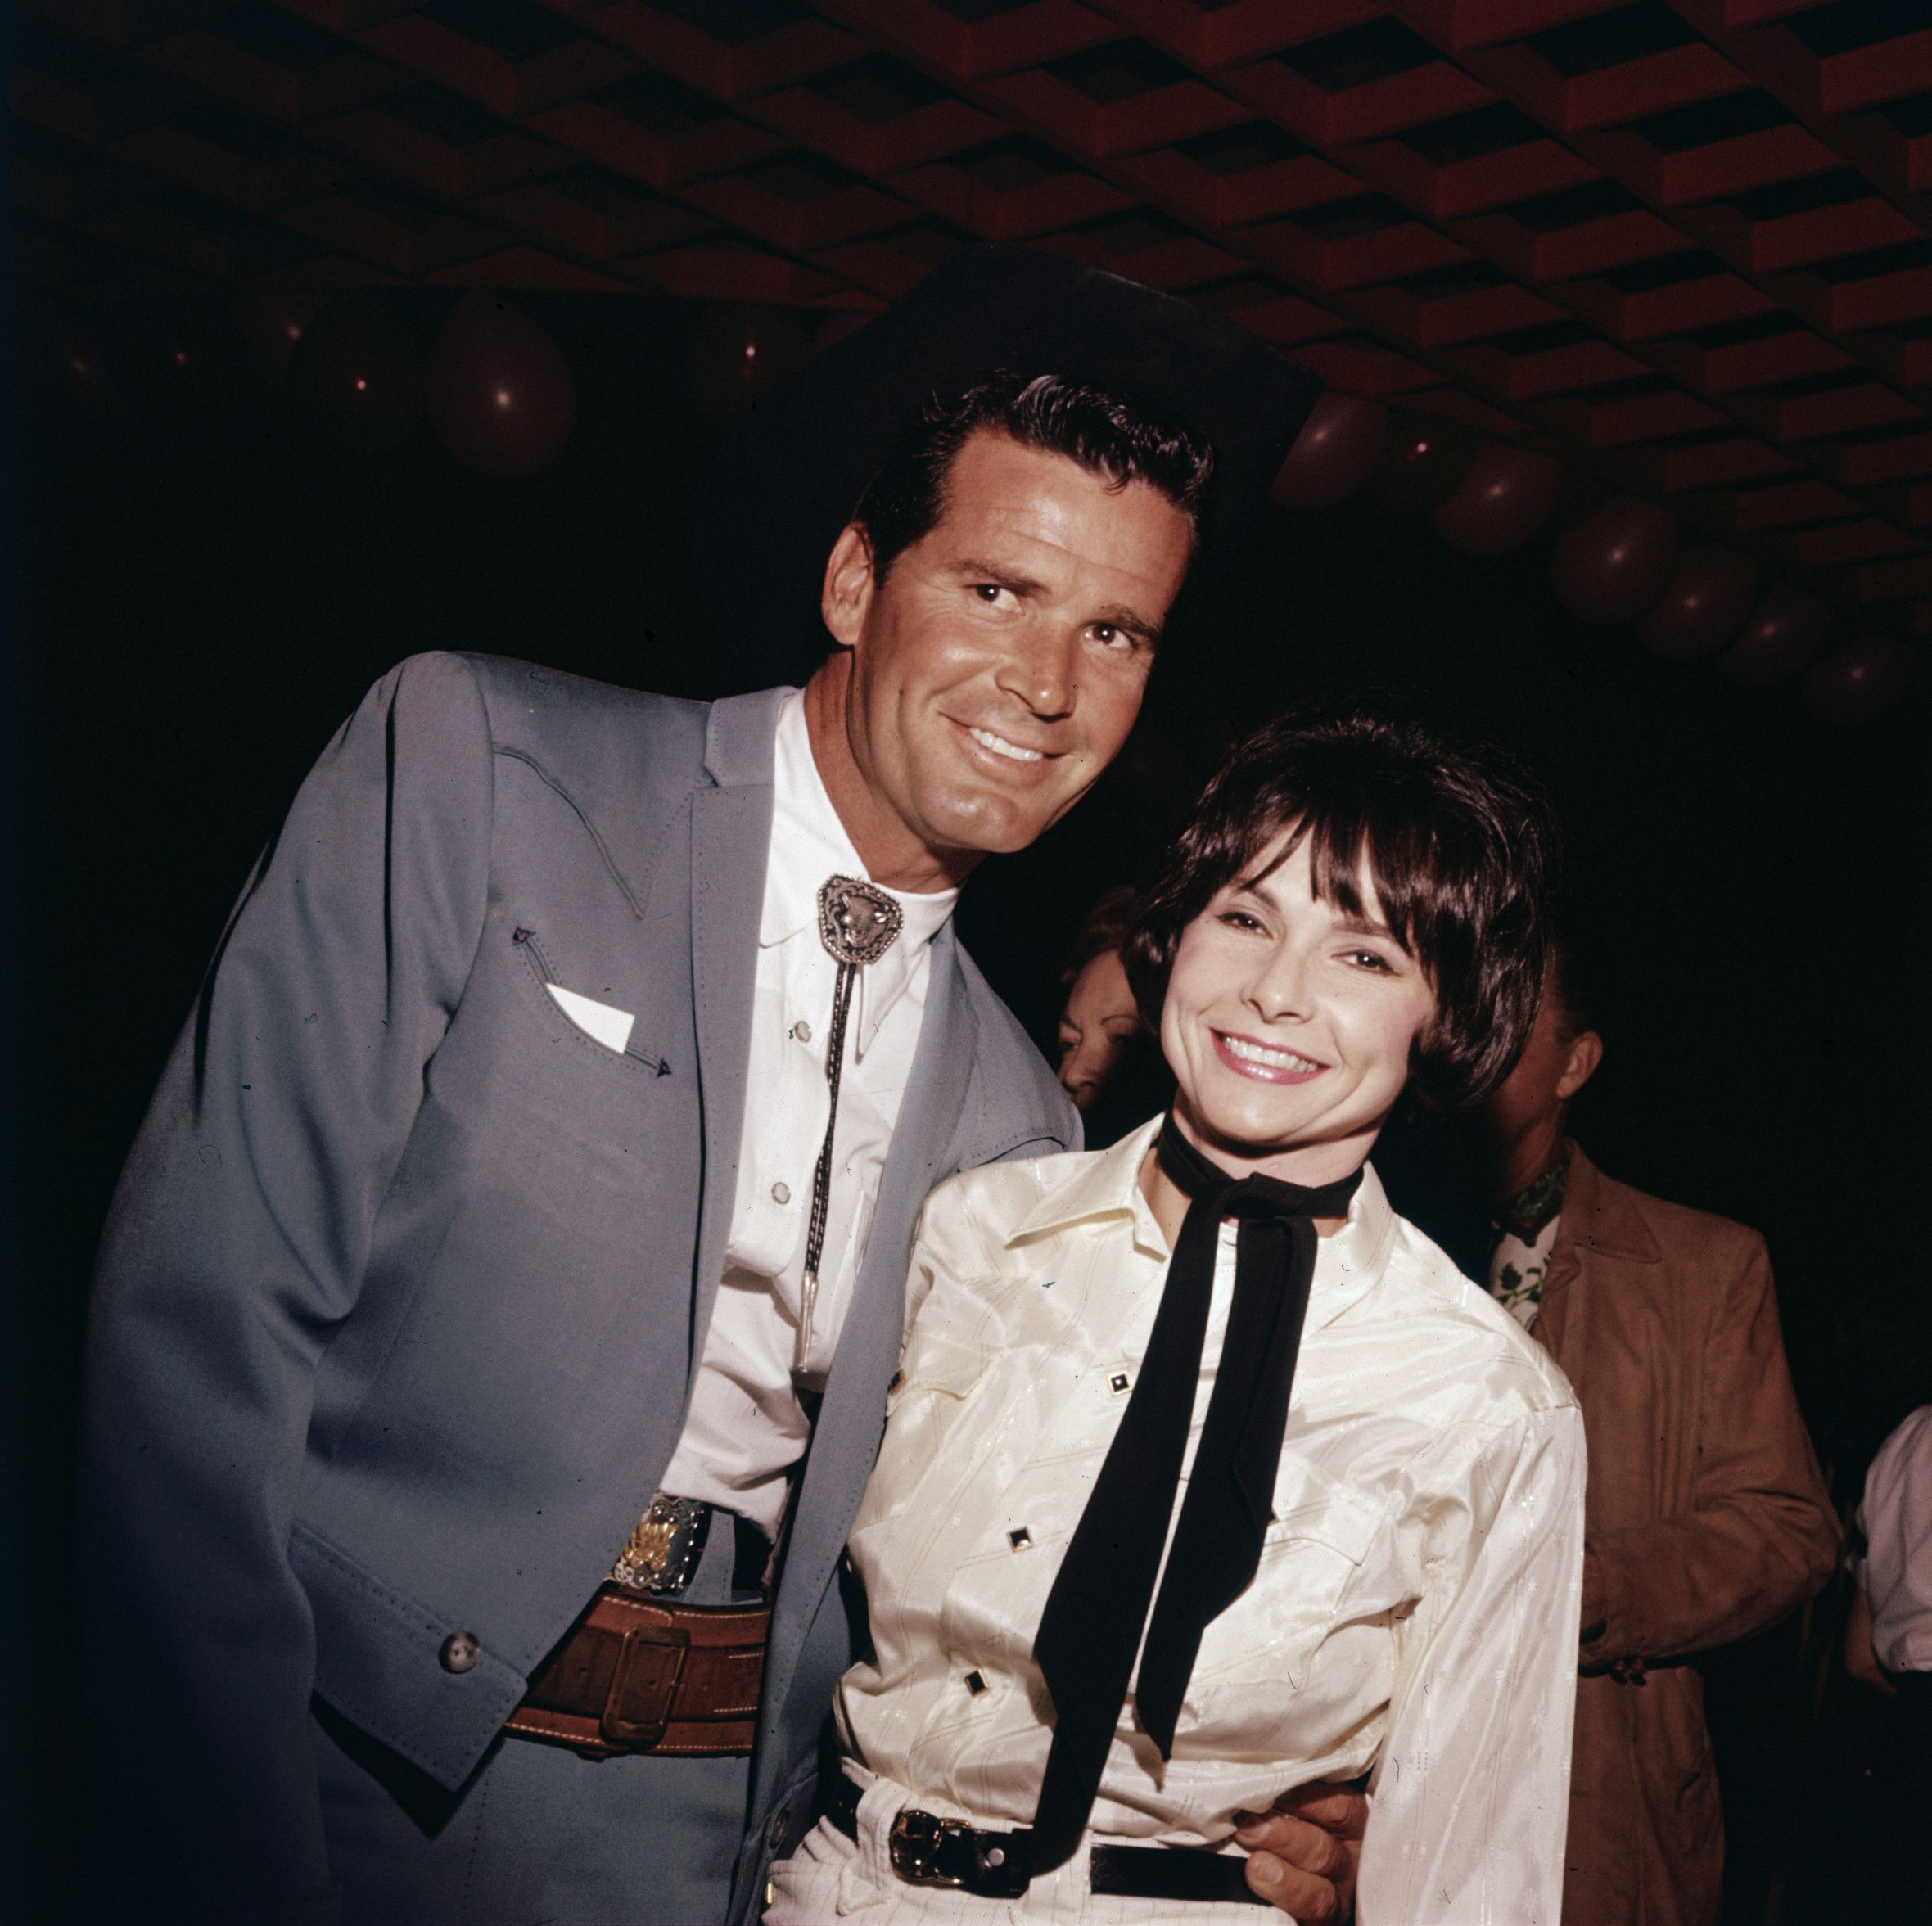 James Garner's Daughter Remembers the Late Hollywood Actor #hollywoodactor